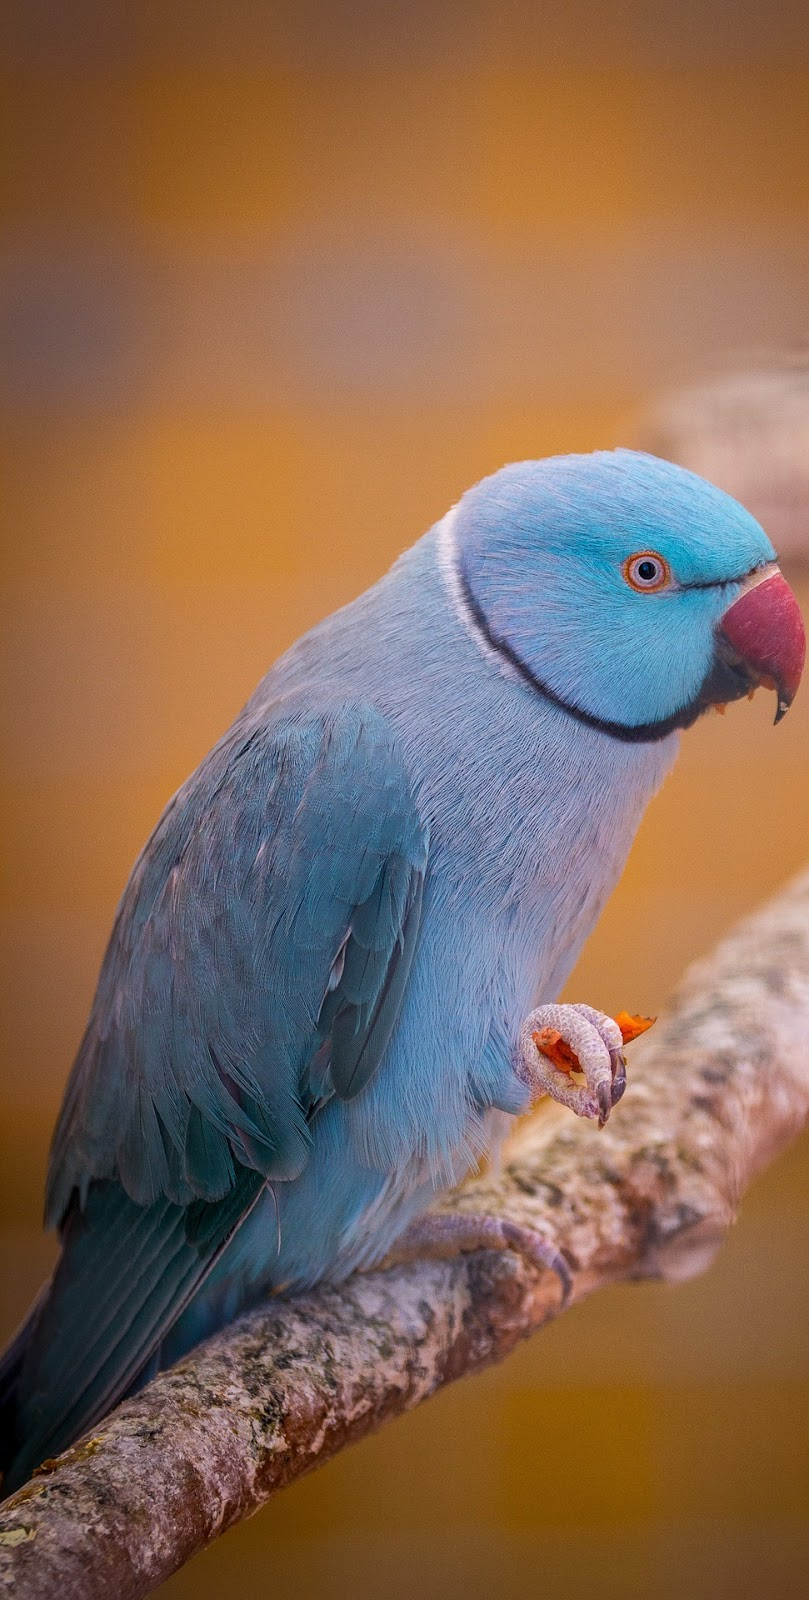 Picture of a beautiful blue parrot.